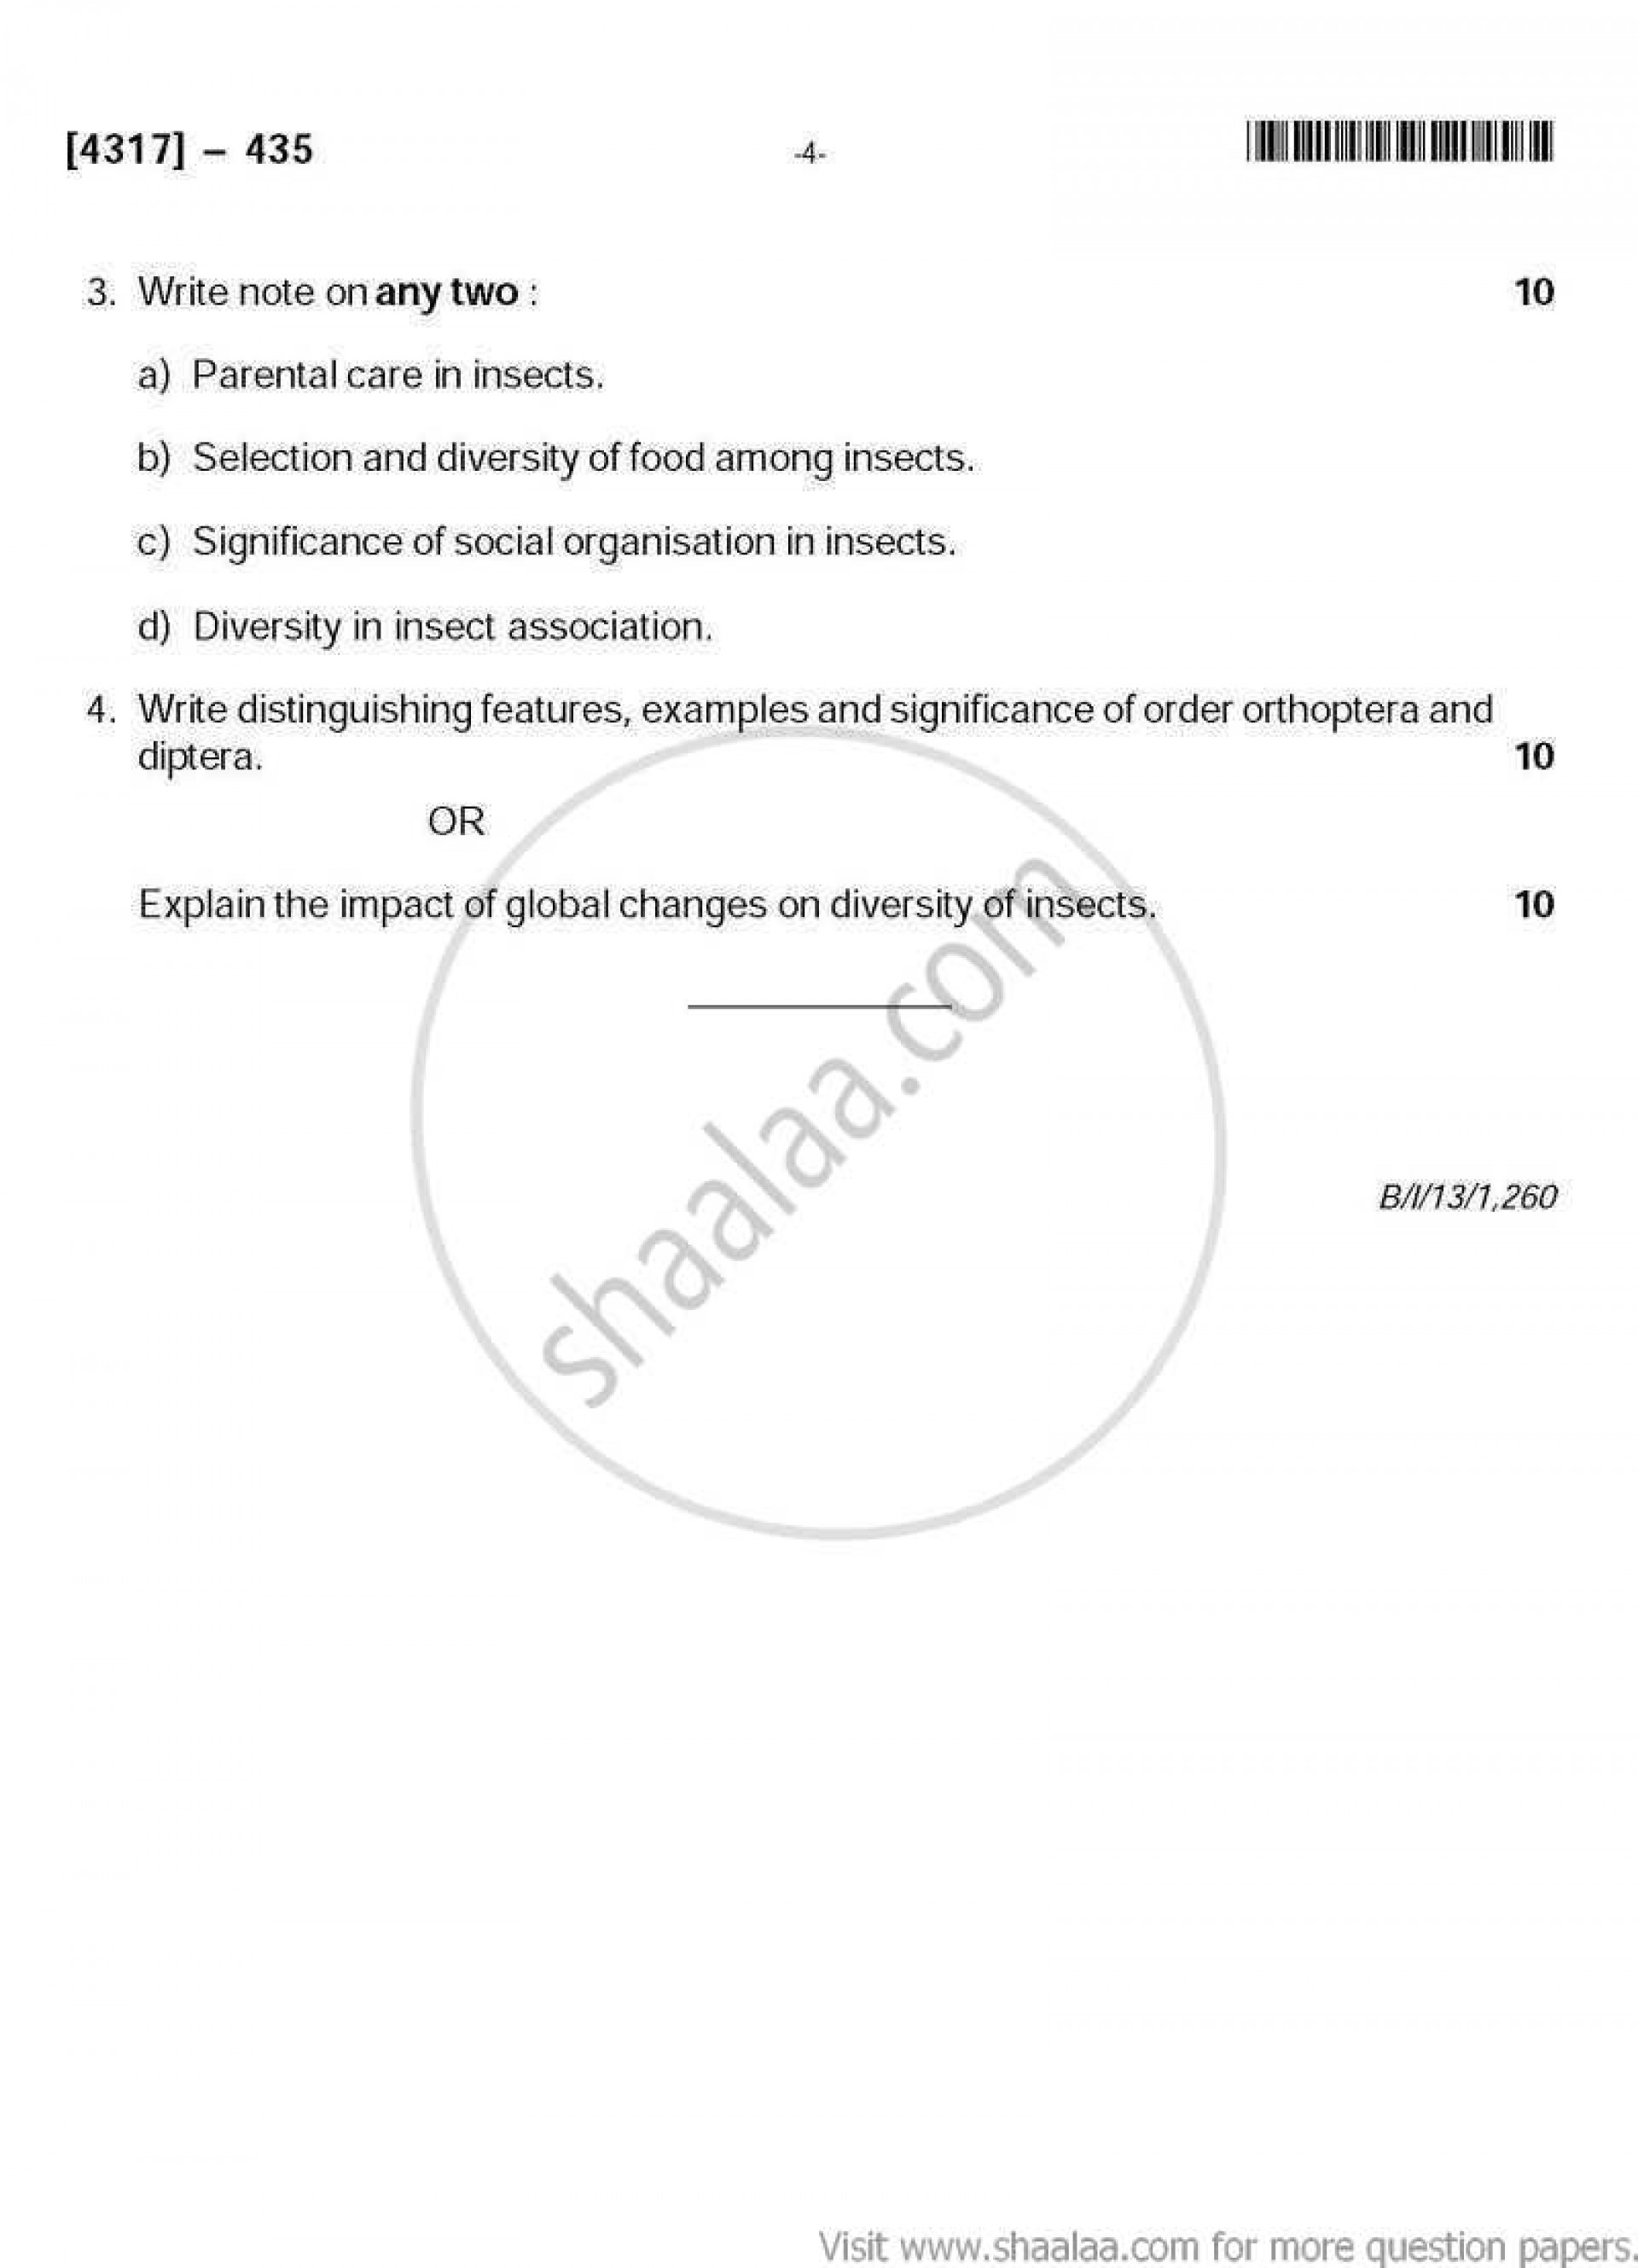 015 Essay Example Biodiversity Topics Science Common Zoology University Pune Conservation Environment Questions On What Means About Argument Writing Pdf Competition Loss Phenomenal 1920